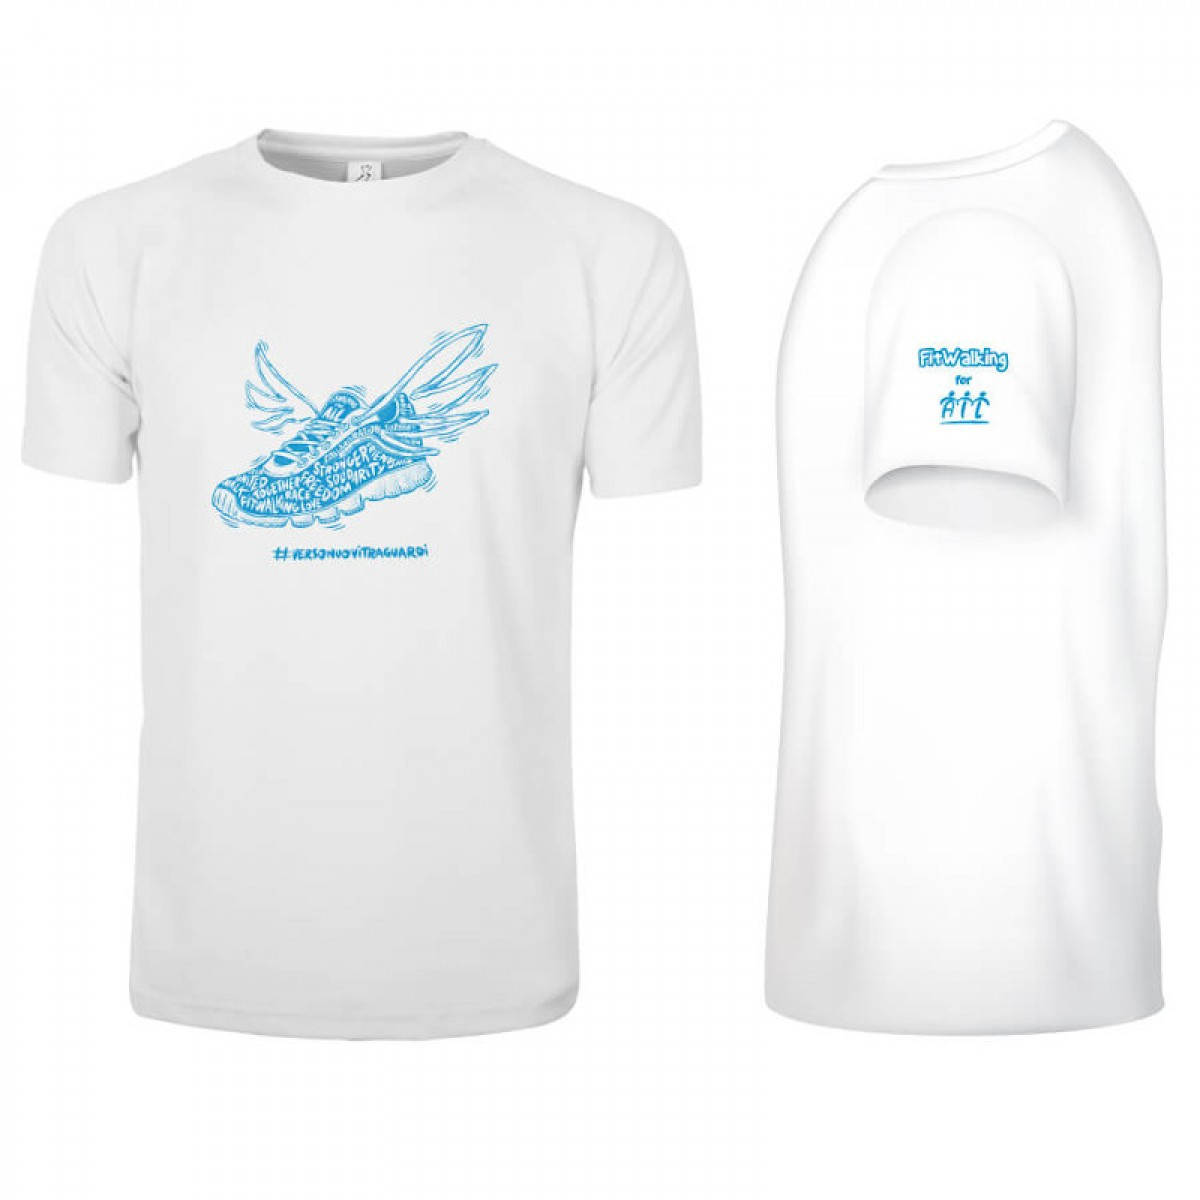 T-Shirt Tecnica Fitwalking for AIL